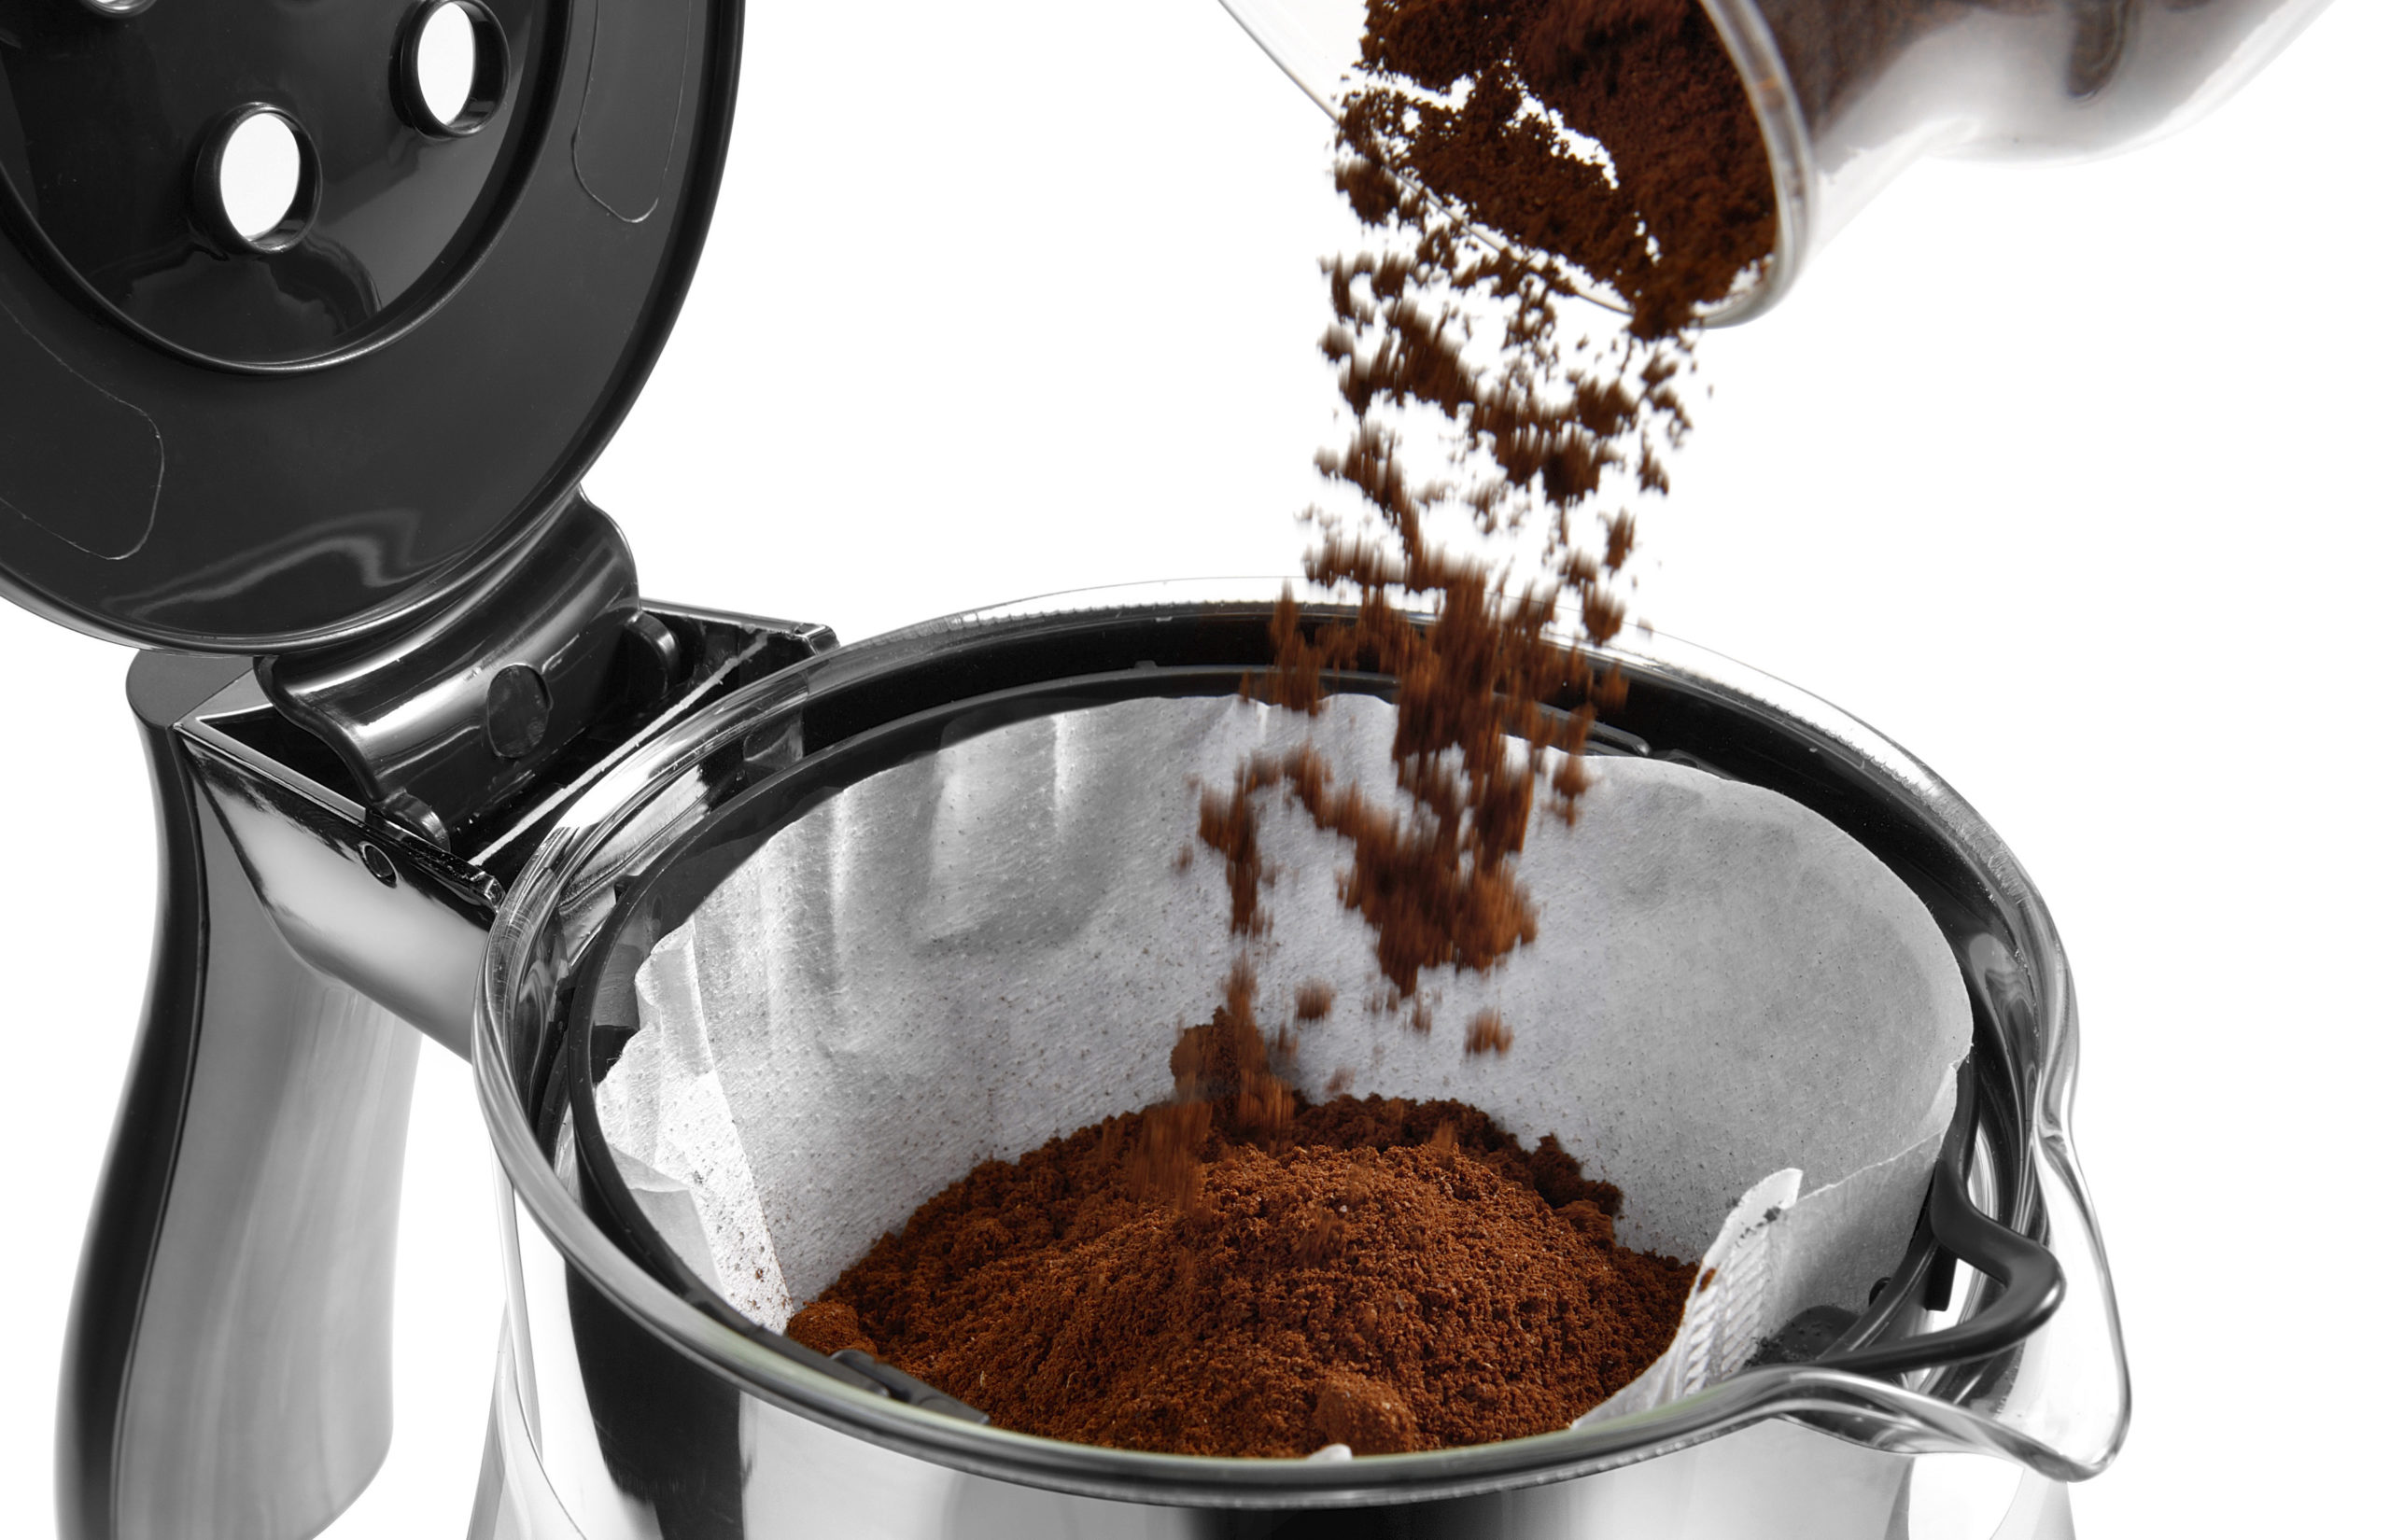 pouring coffee grounds into a drip coffee machine